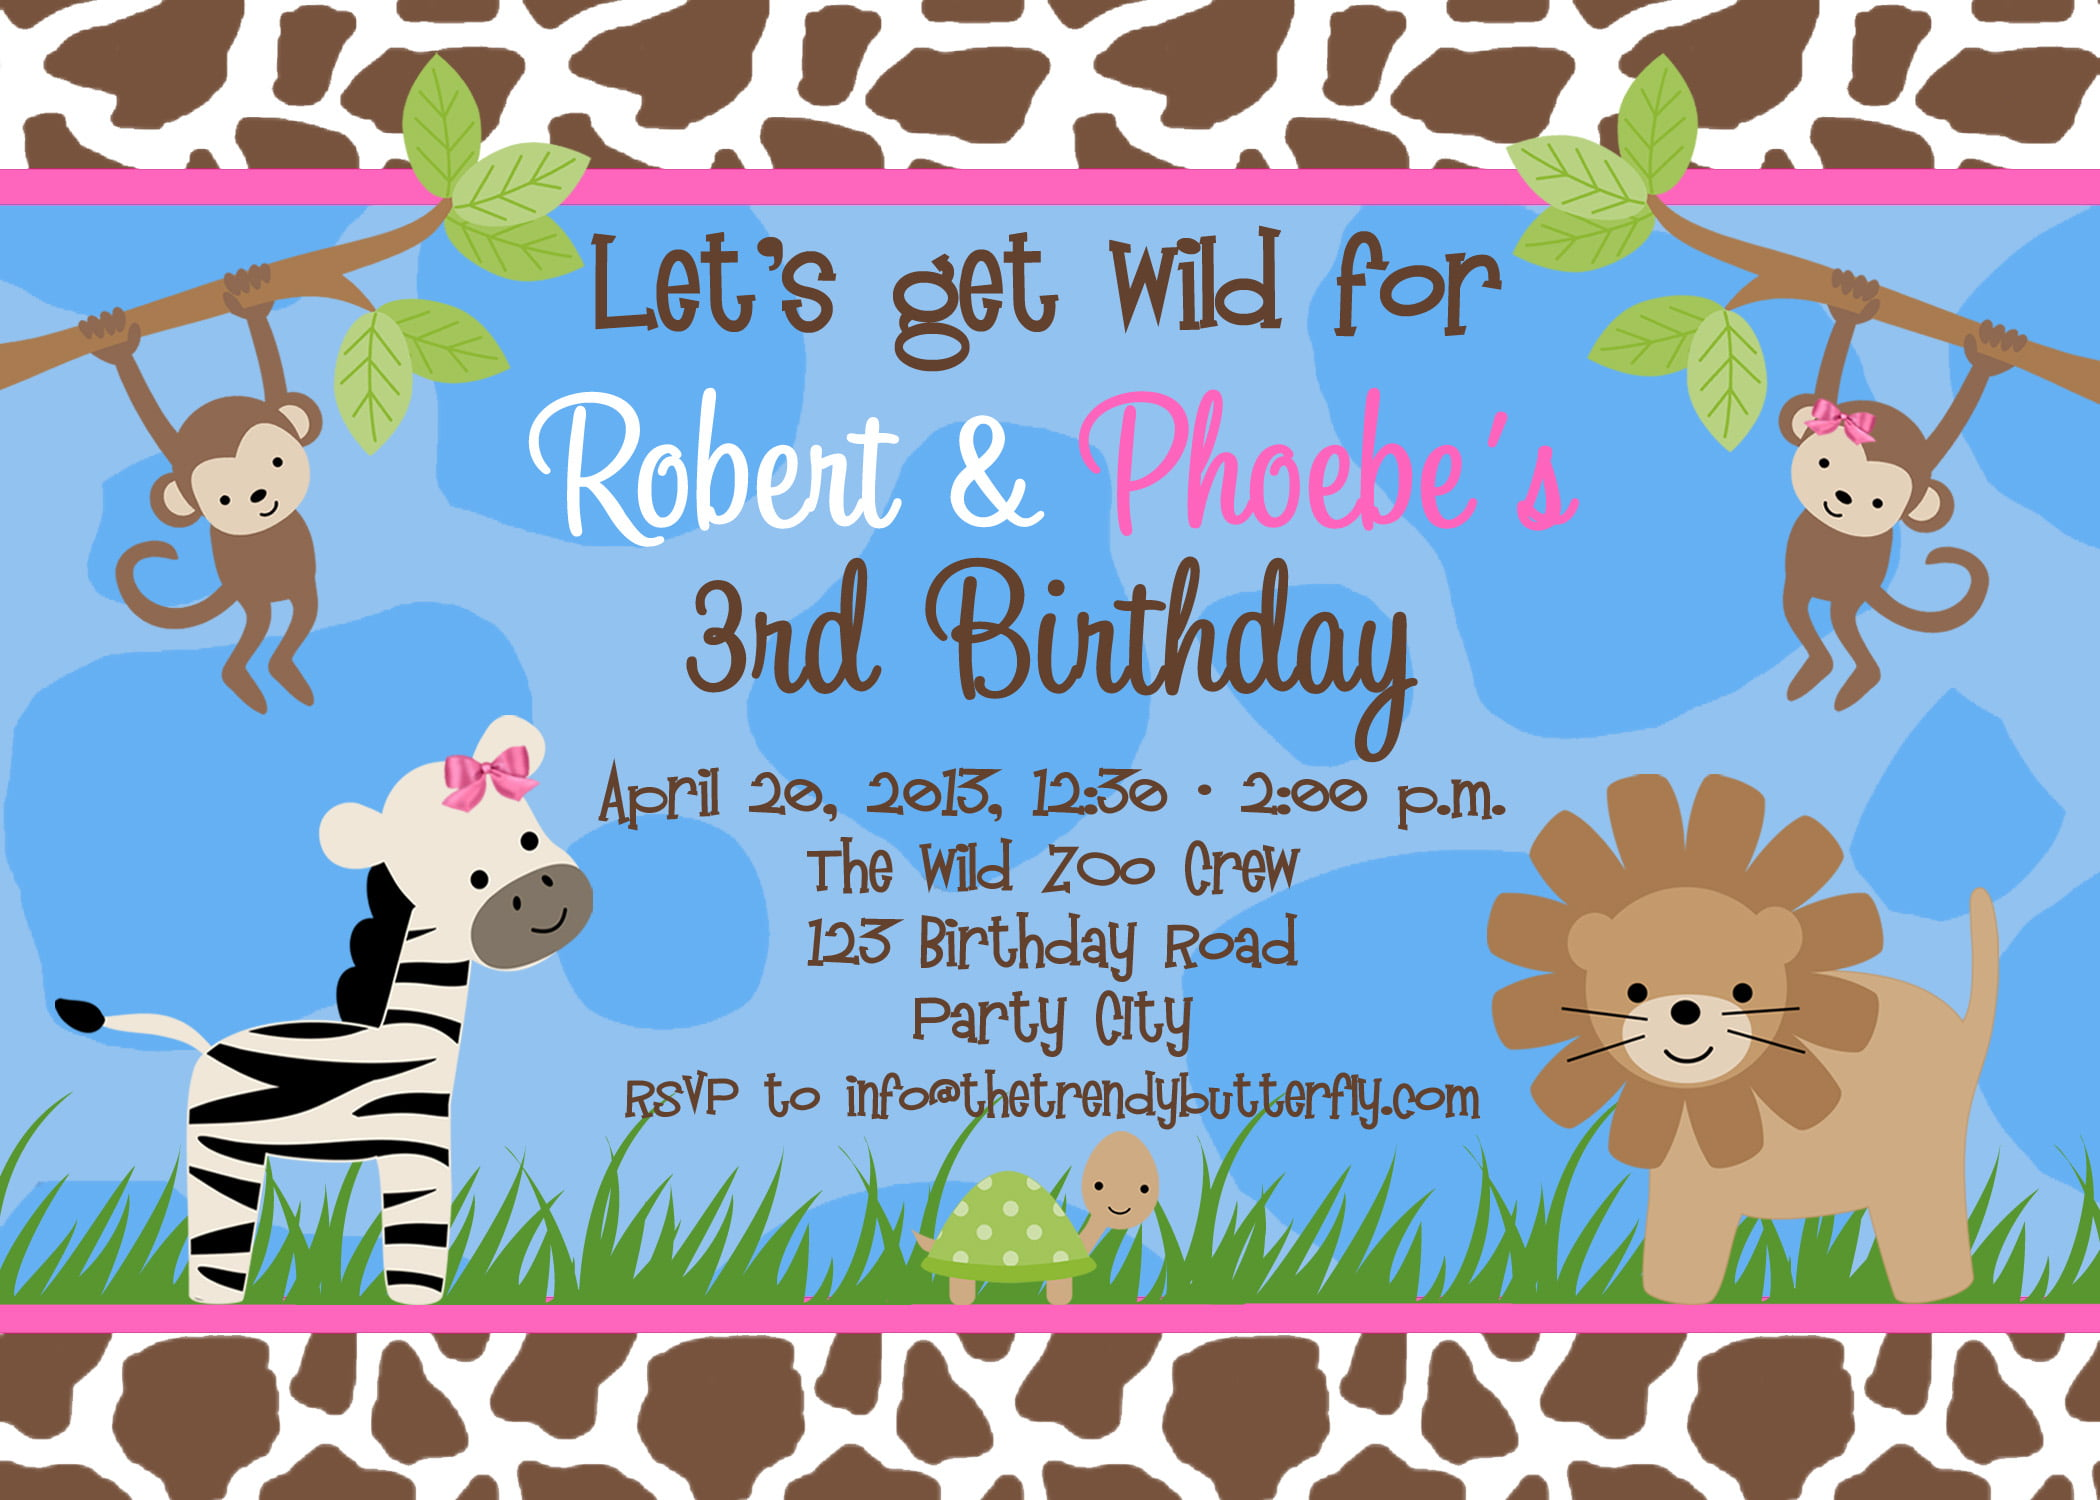 Free Birthday Party Invitation Templates Drevio Invitations Design - Birthday invitation free download